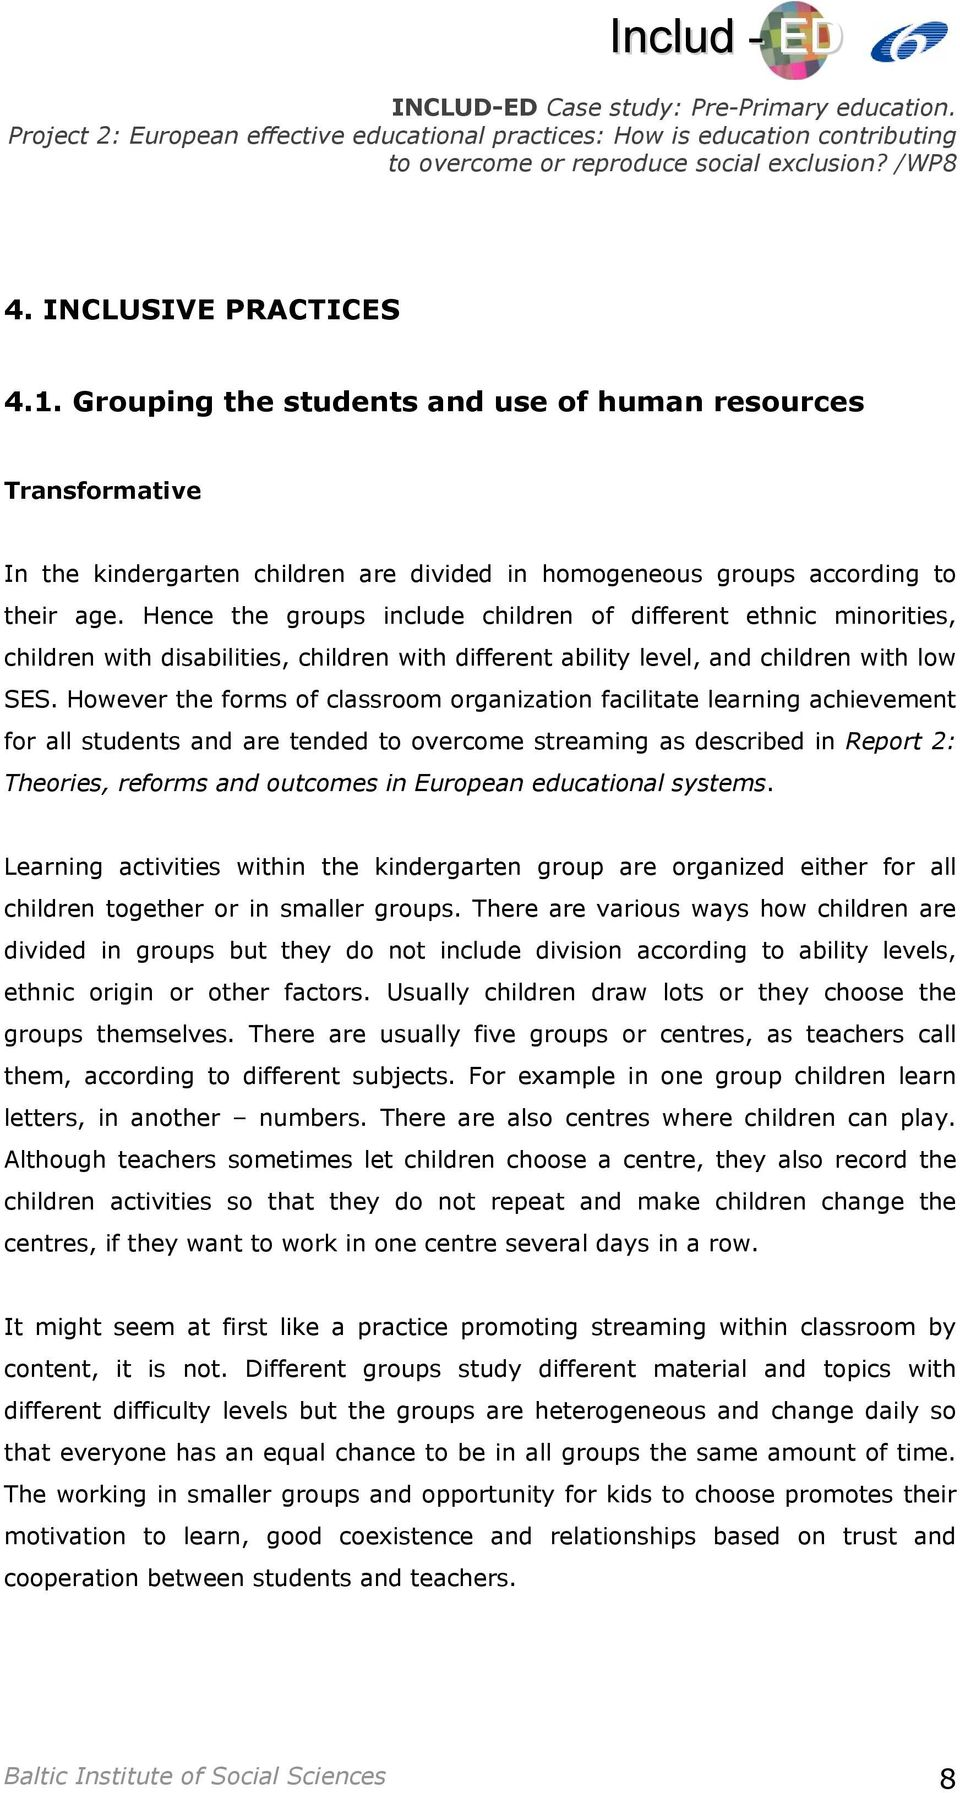 However the forms of classroom organization facilitate learning achievement for all students and are tended to overcome streaming as described in Report 2: Theories, reforms and outcomes in European